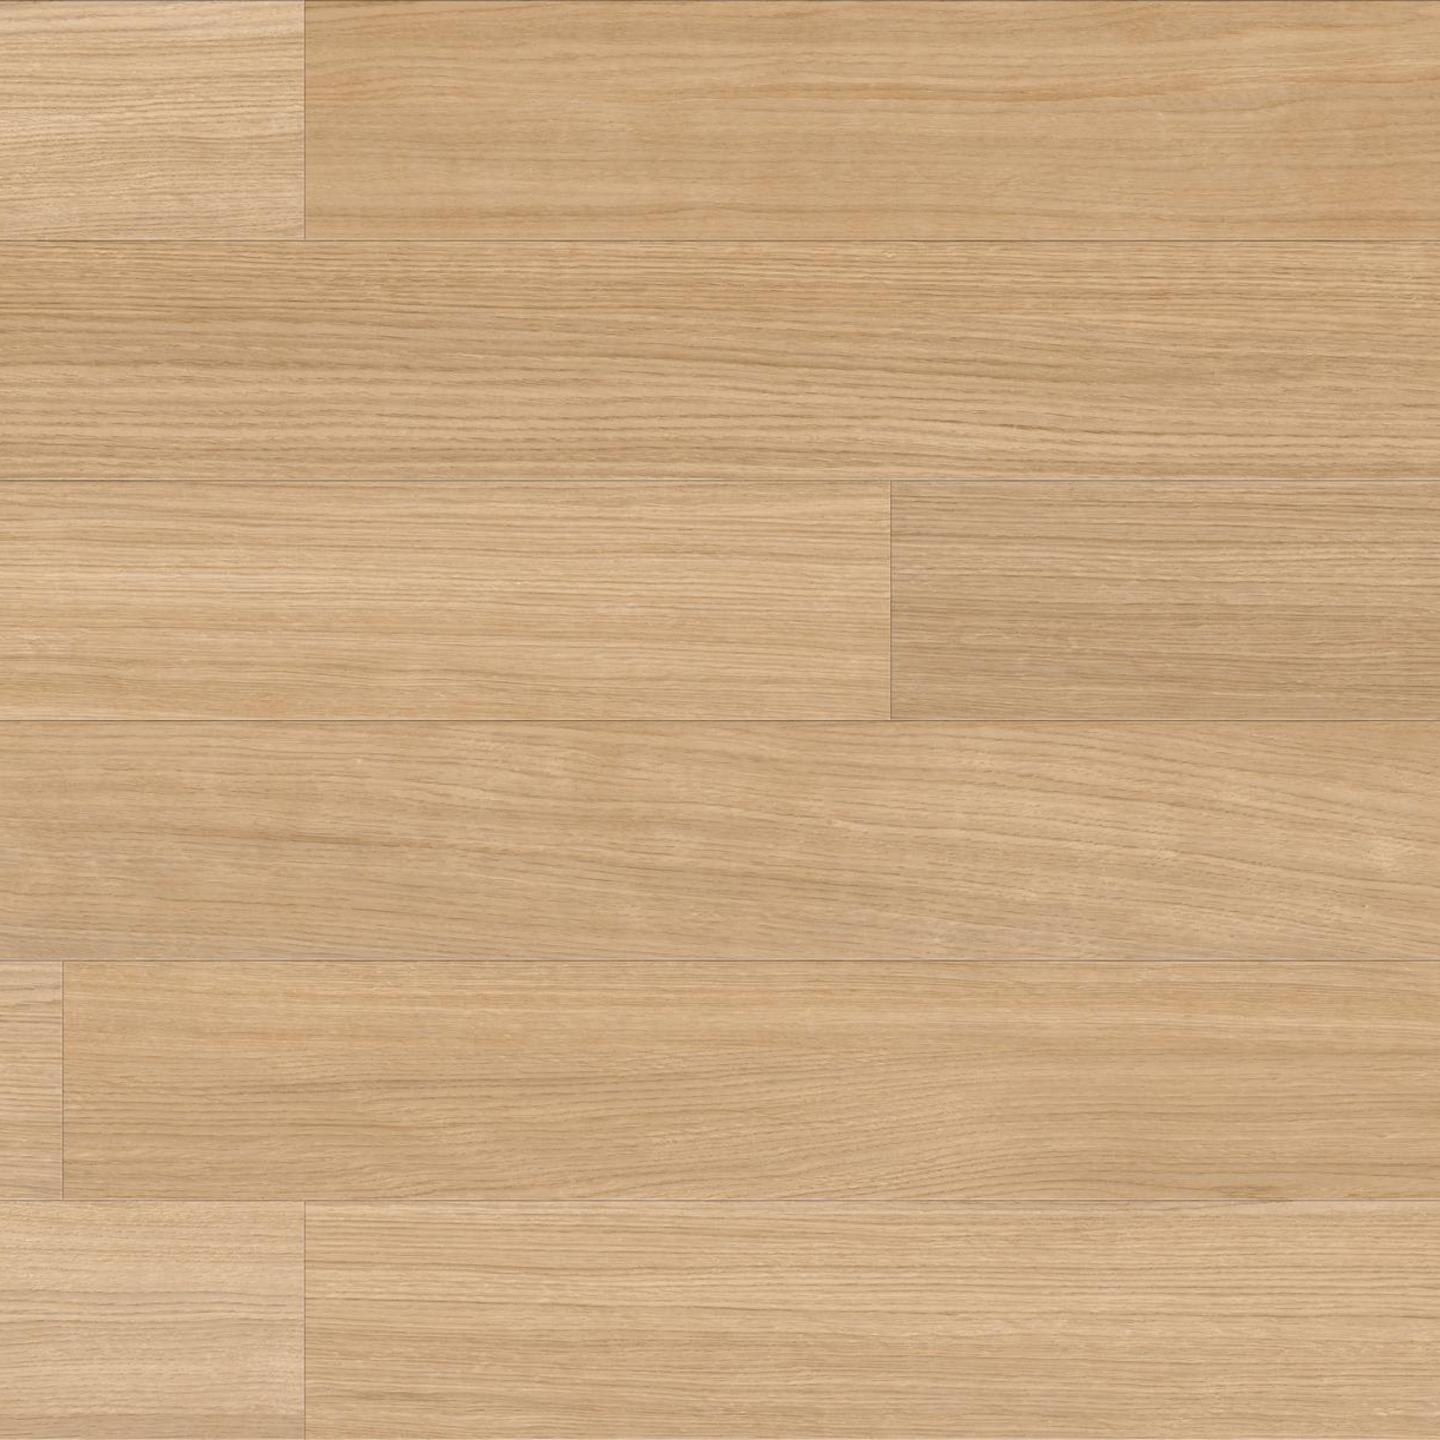 Layed area wood floor Veneer Parquet EIWL Oak Sabin LM